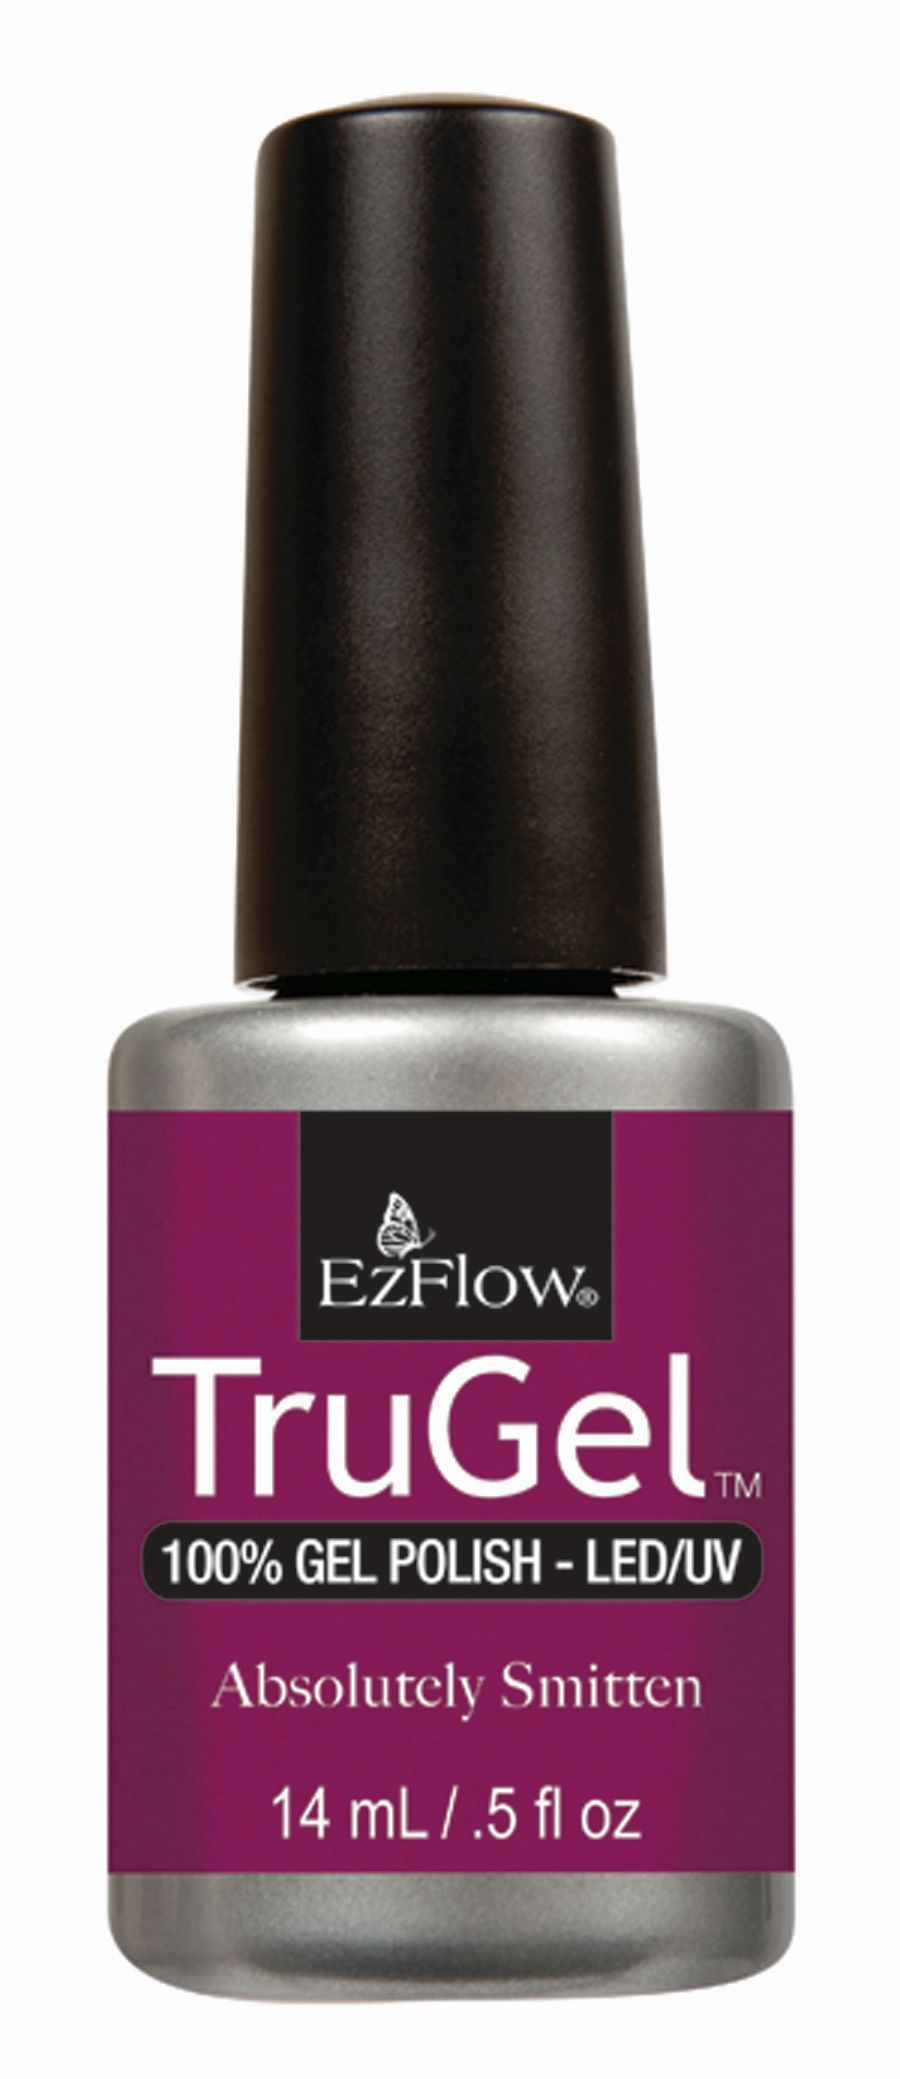 <p>EzFlow TruGel in Absolutely Smitten.&nbsp;</p>